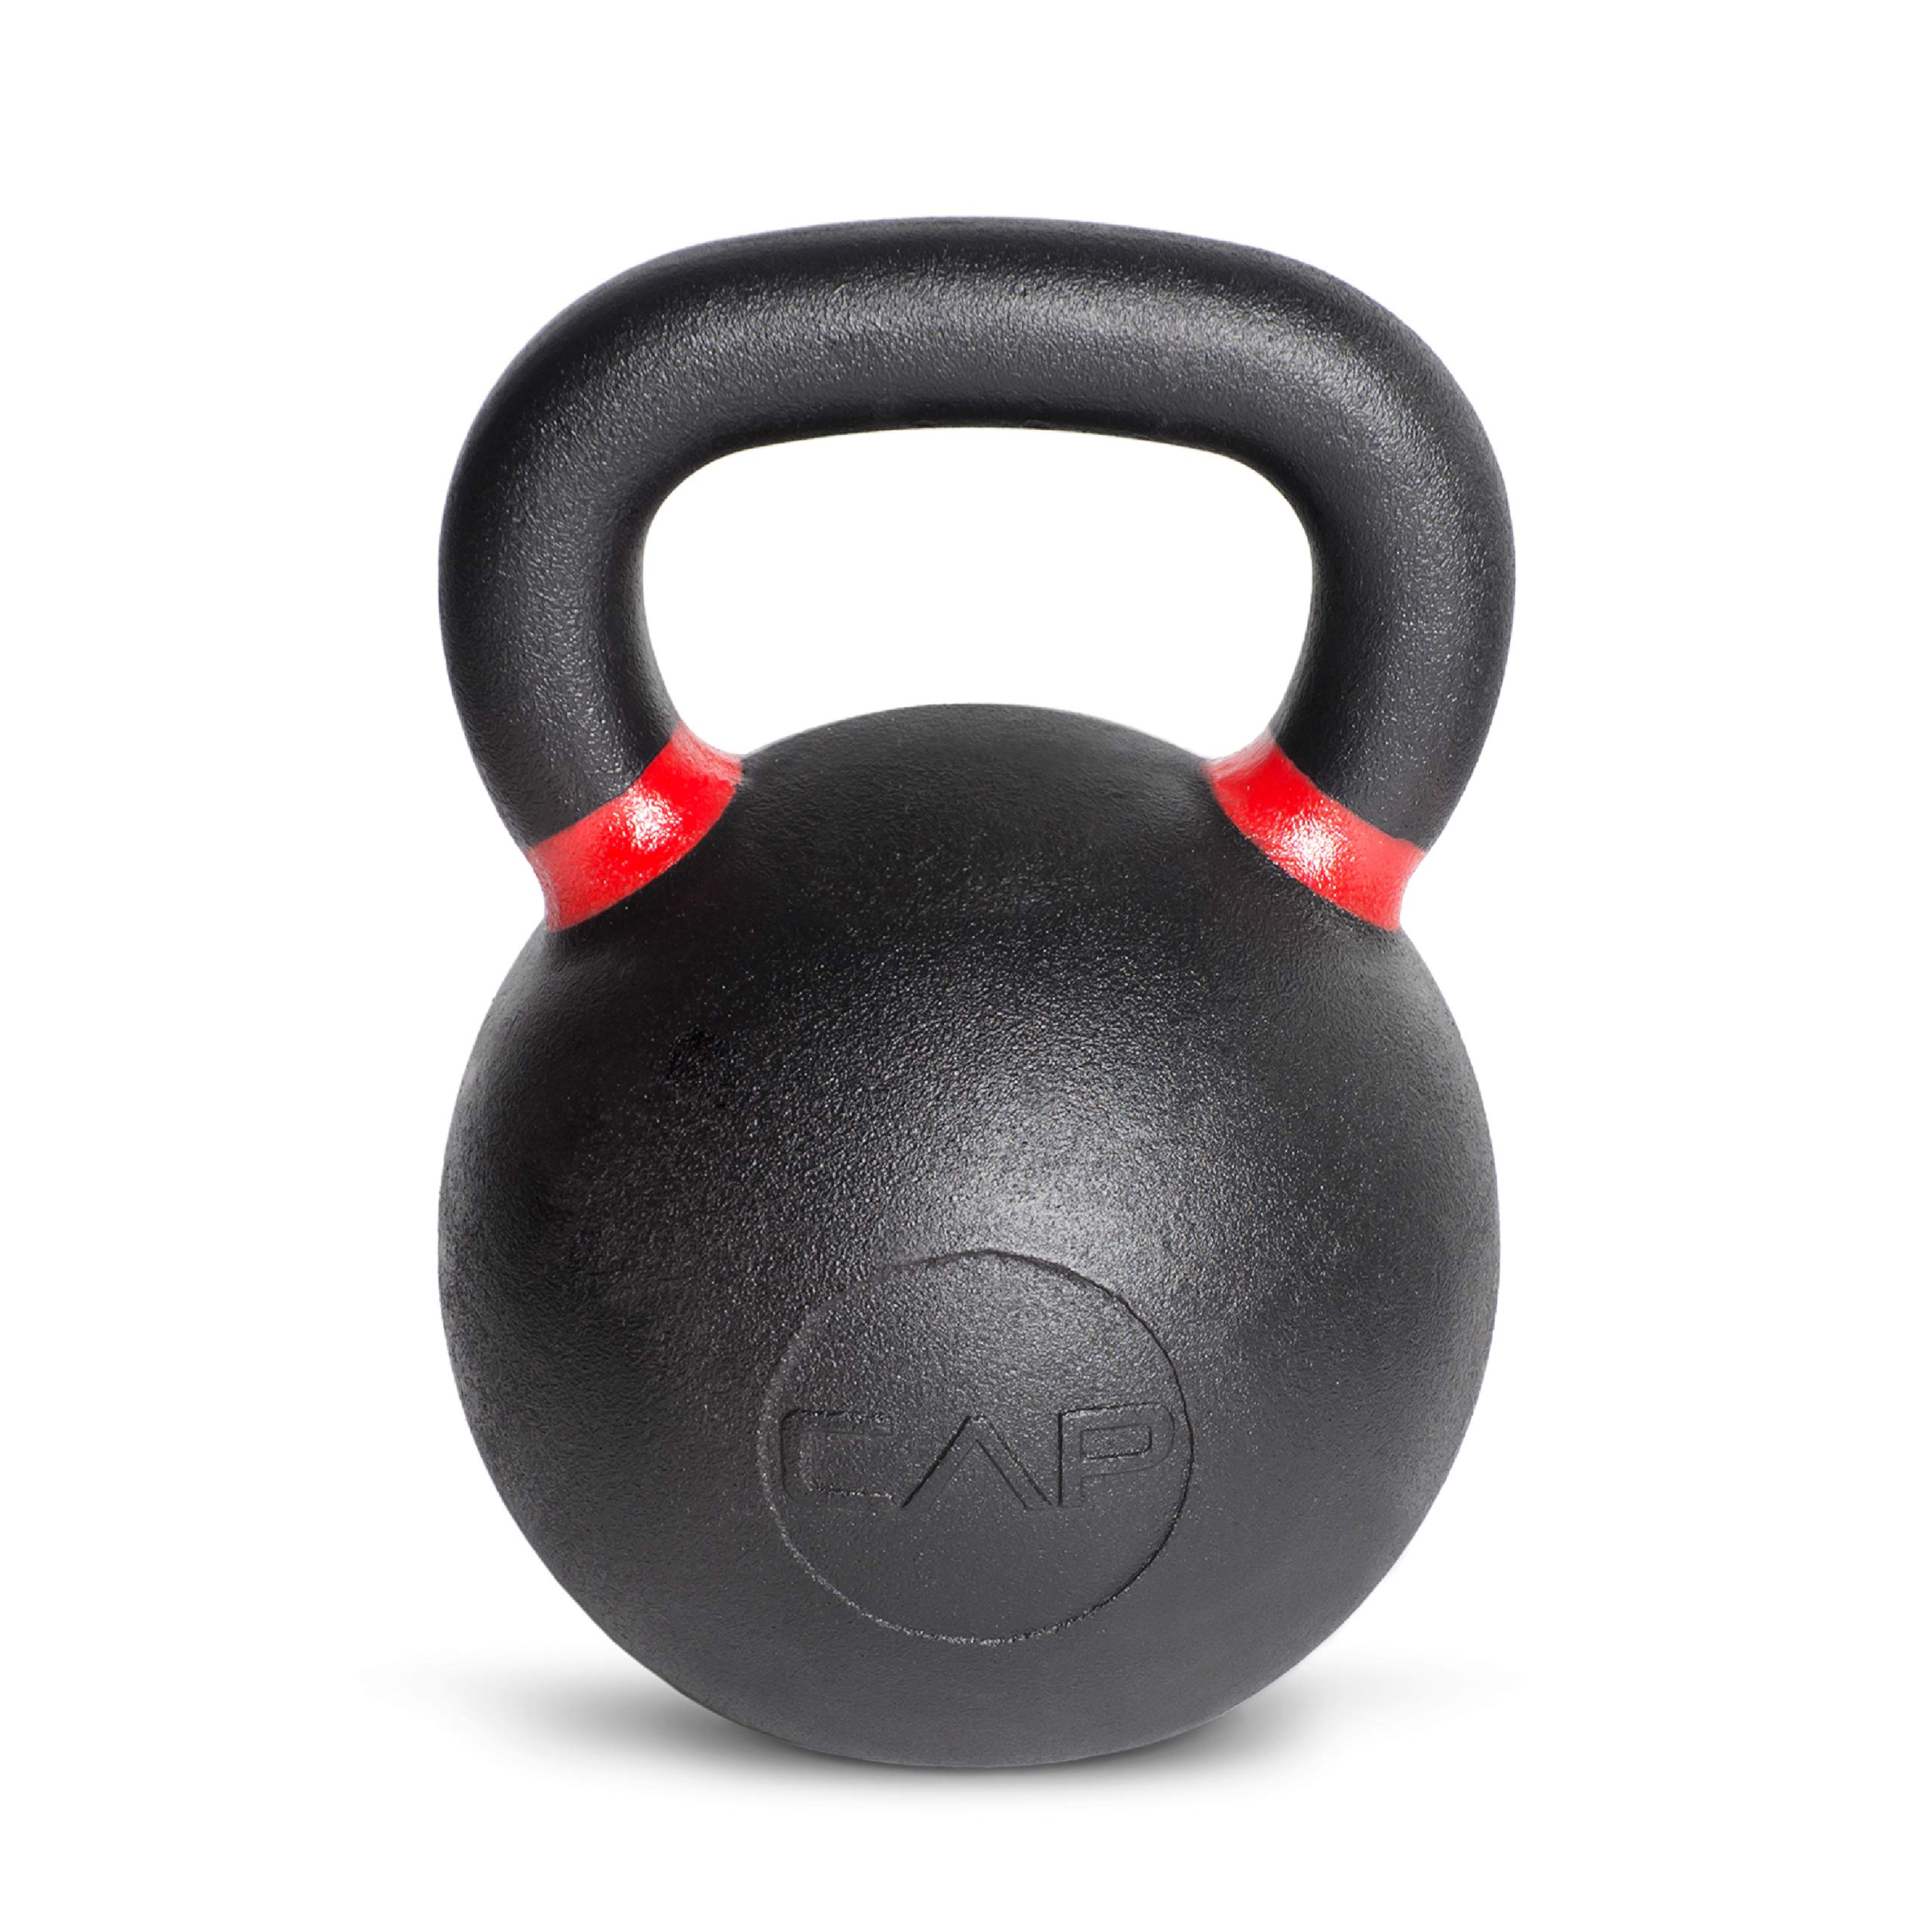 CAP Barbell Cast Iron Competition Kettlebell Weight, 70 Pound, Black/Red